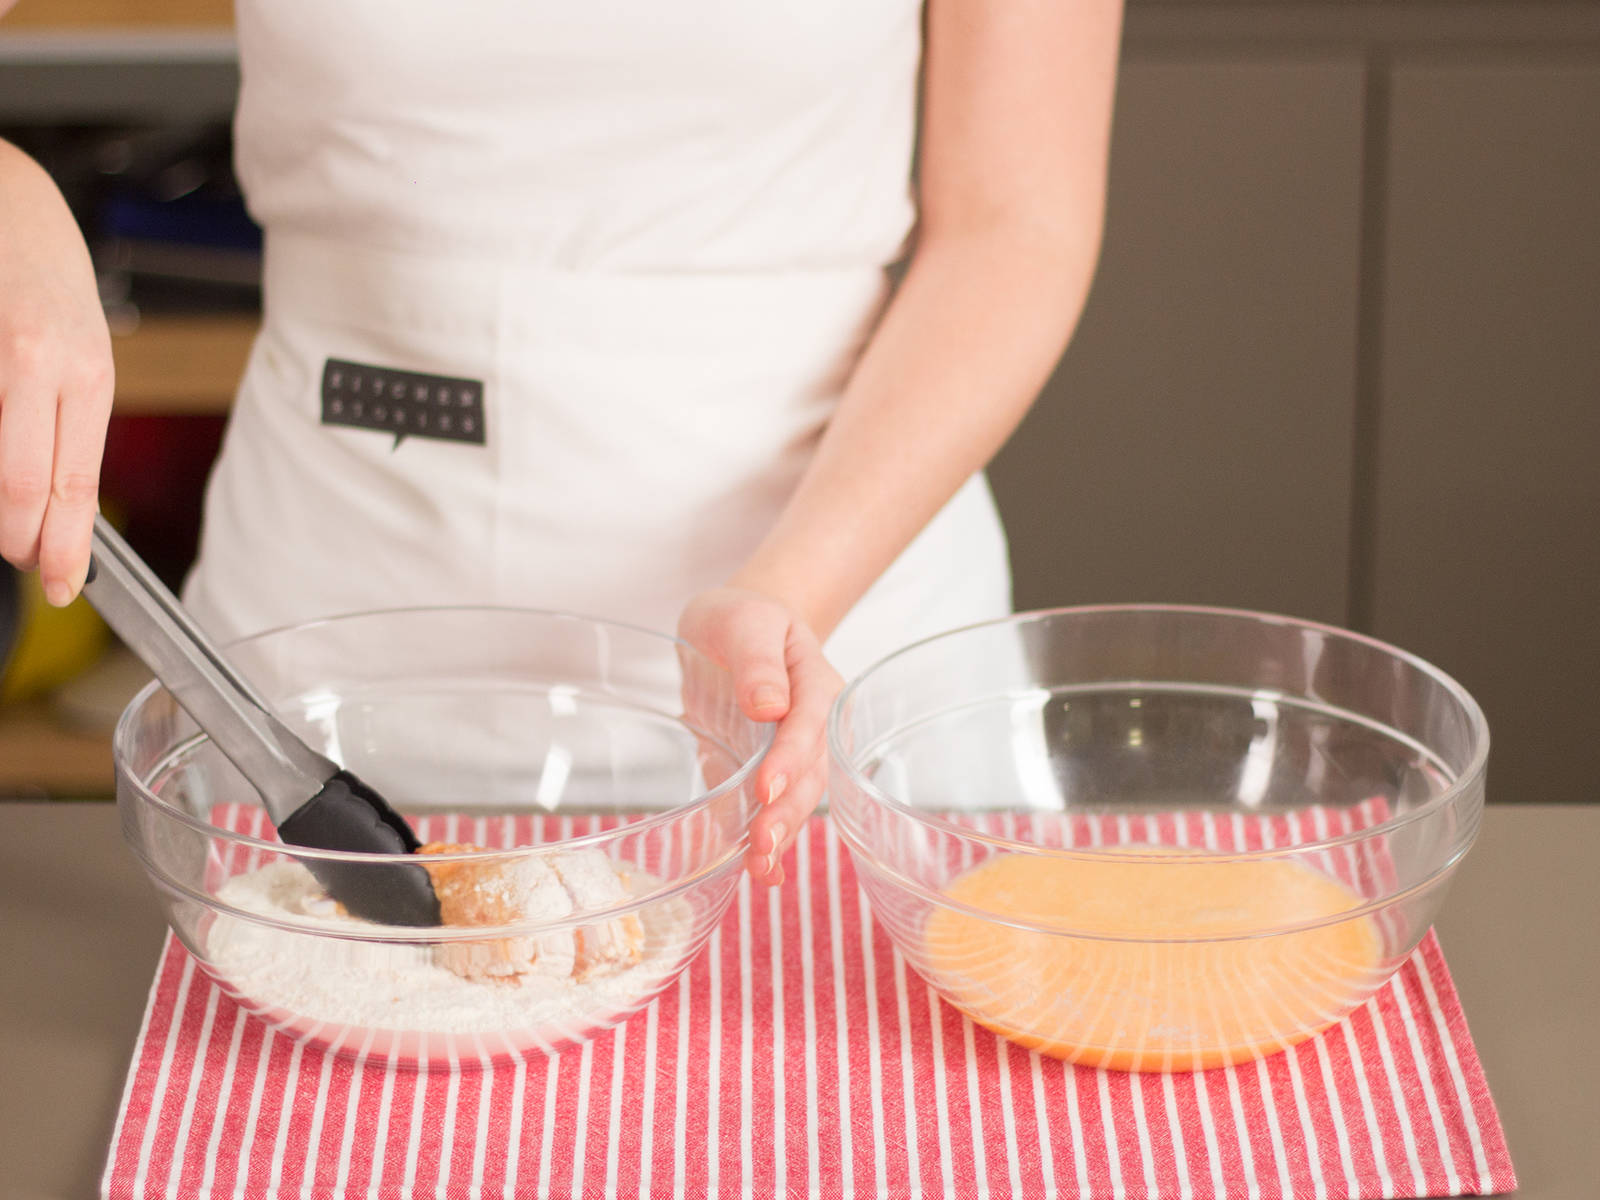 Dip chicken pieces in the egg mixture until well coated on all sides. Lightly shake to remove excess liquid. Then dredge chicken in flour mixture until a thick and even crust is formed. Repeat these steps for a thicker crust if desired.